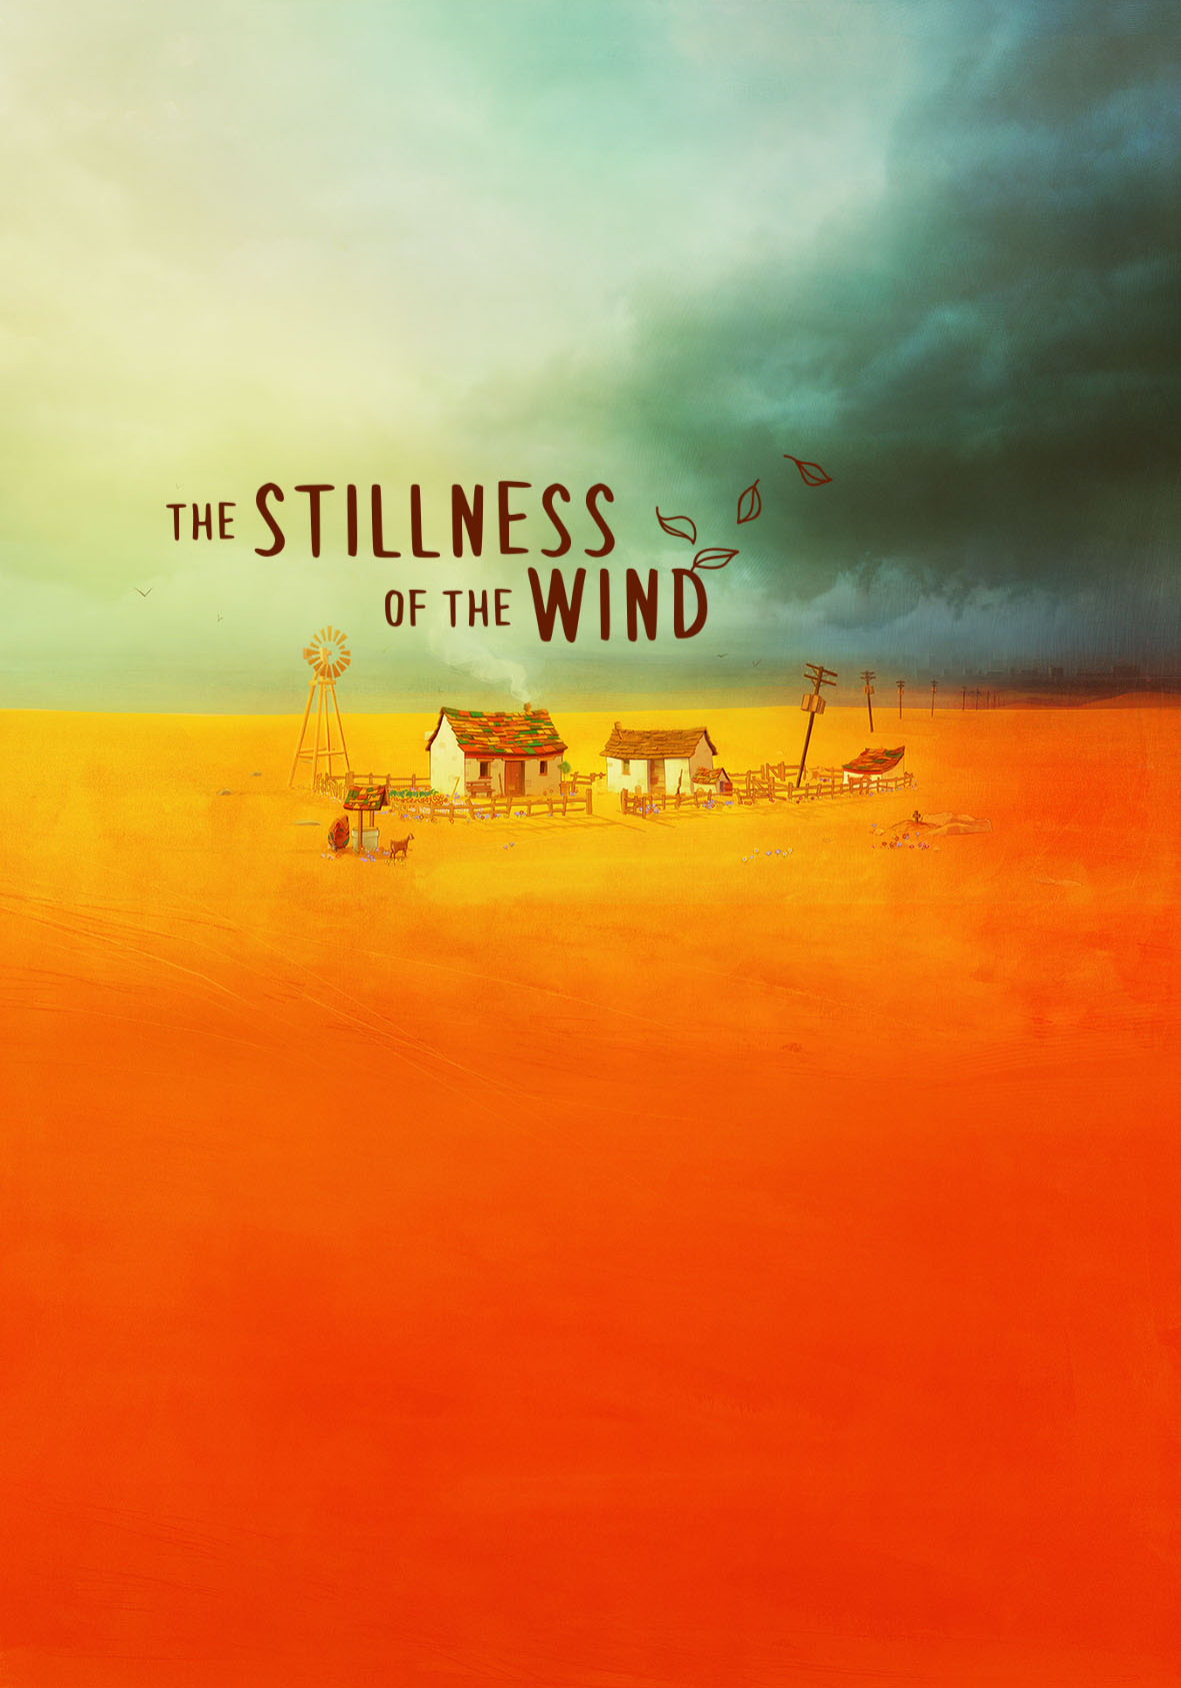 THE STILLNESS OF THE WIND | Lambic Studios